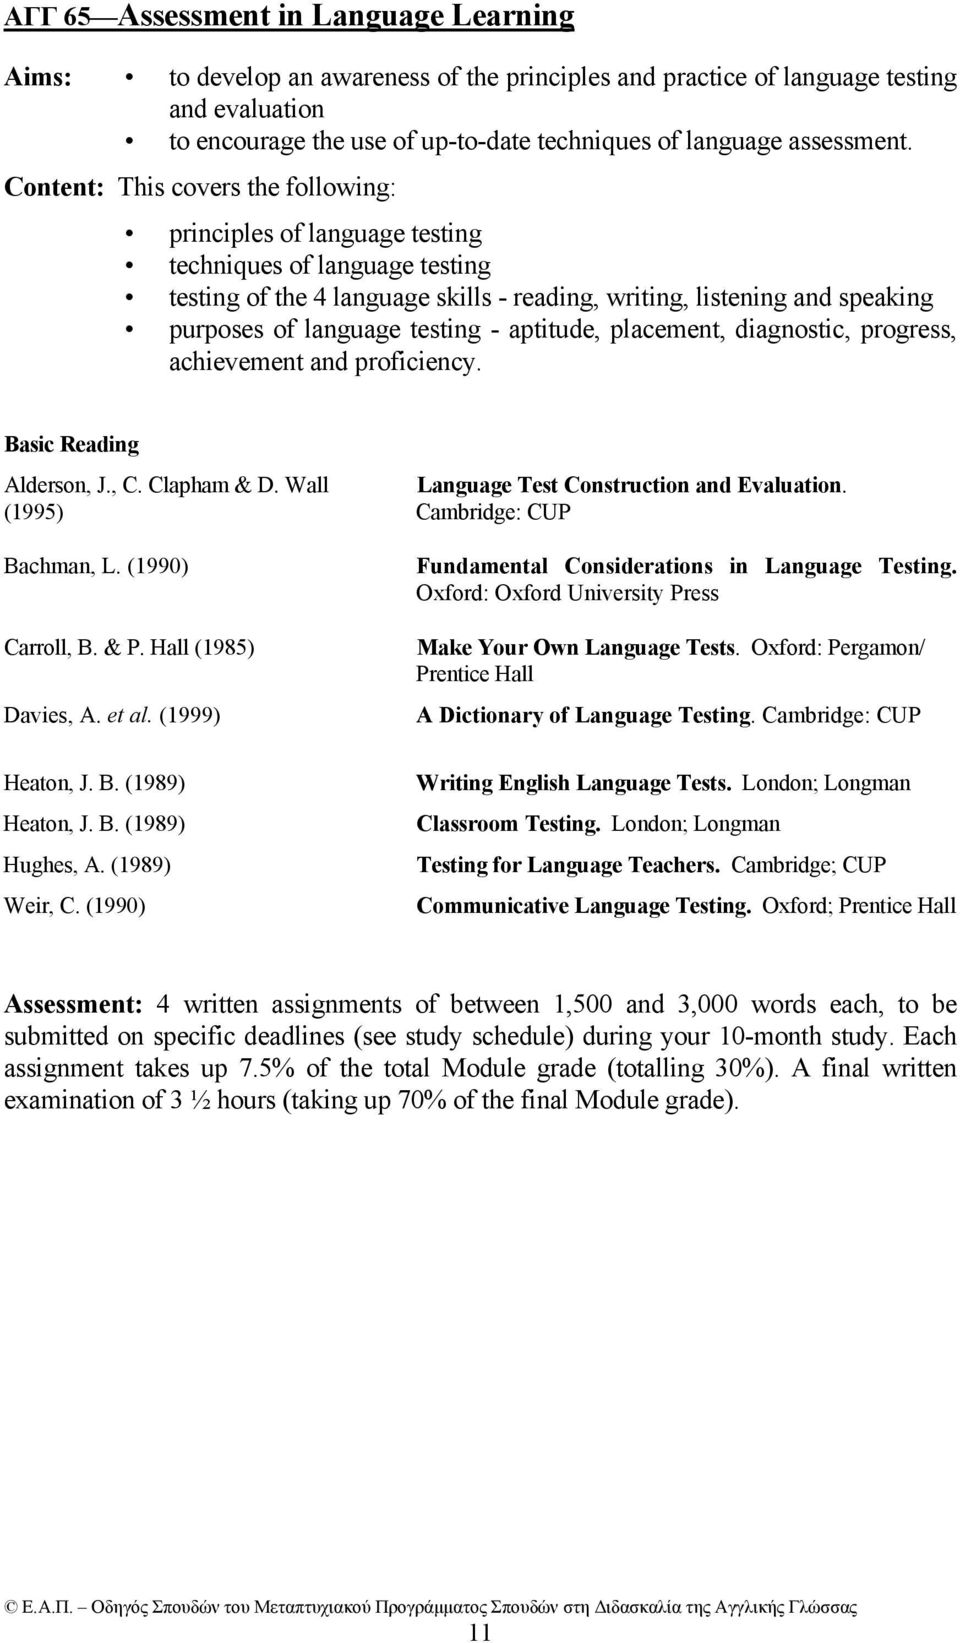 Content: This covers the following: principles of language testing techniques of language testing testing of the 4 language skills - reading, writing, listening and speaking purposes of language